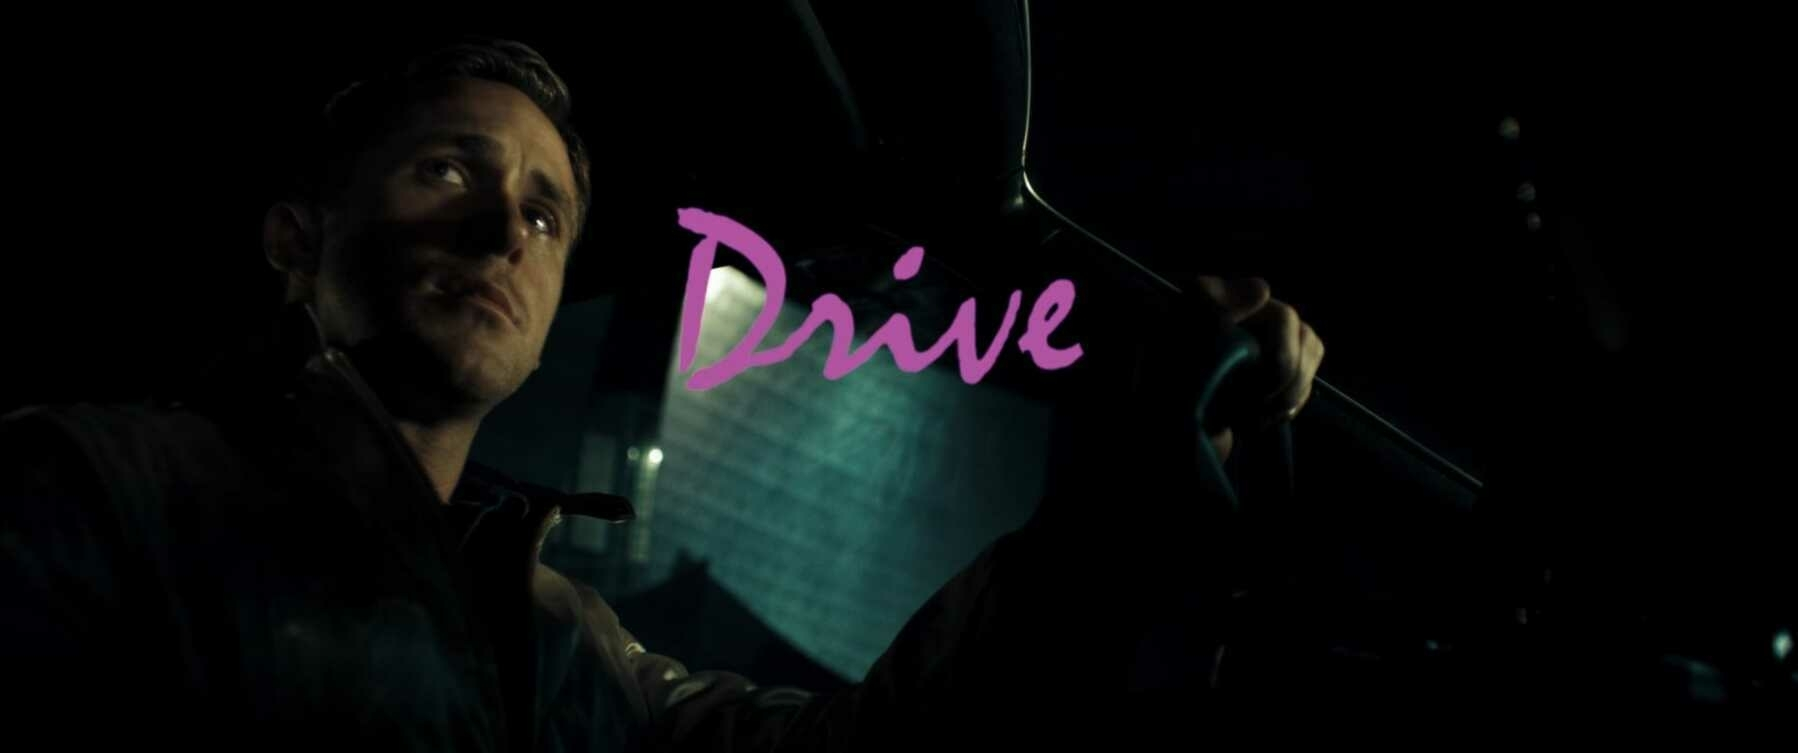 The title card for the film Drive.